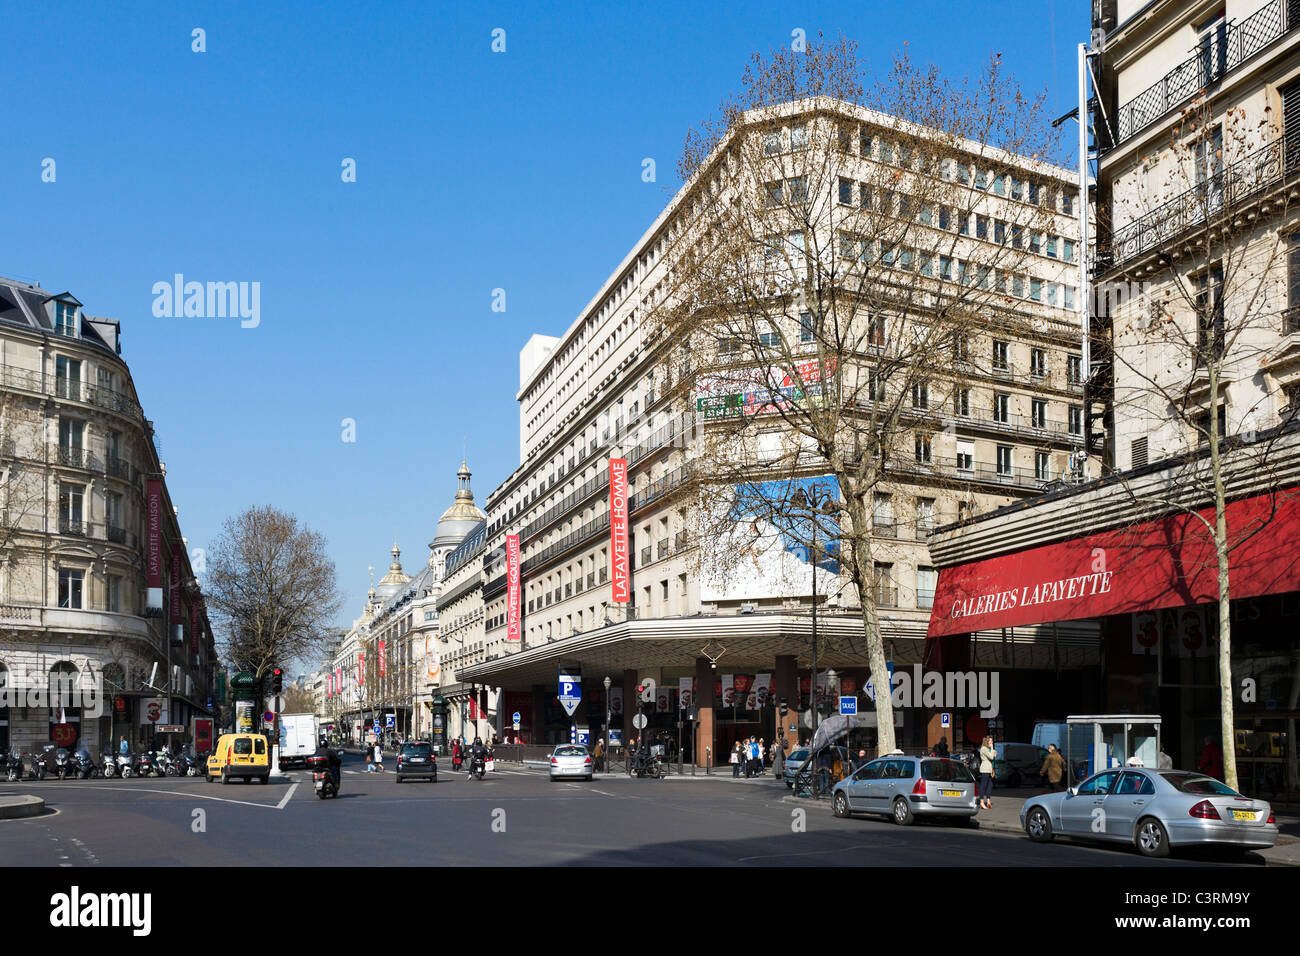 Galeries Lafayette On Boulevard Haussmann In The Centre Of The City